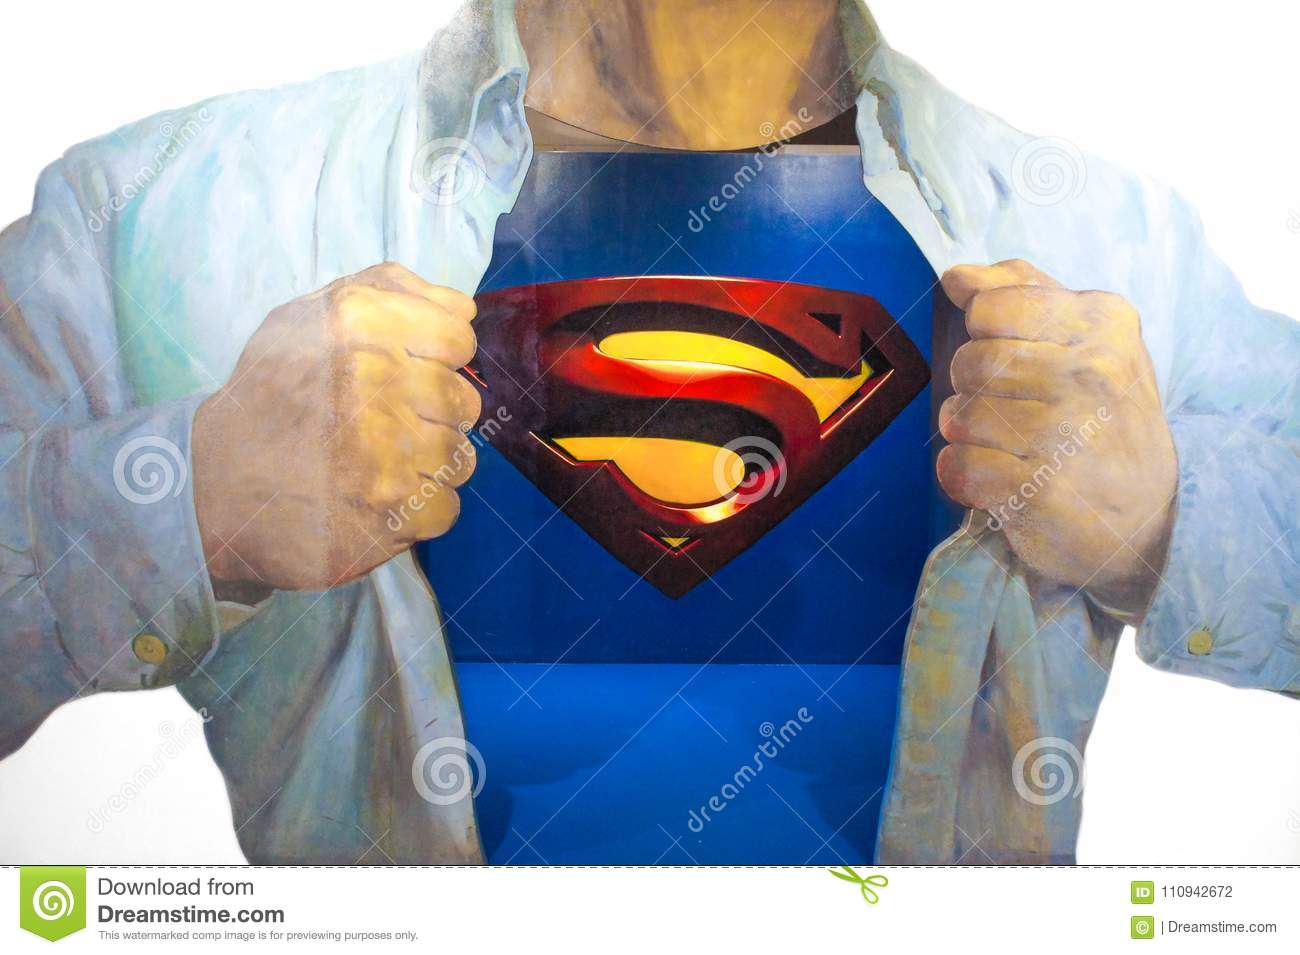 Photo of 3D Wall Painting of Superman, from a famous scene where Clark Kent is transforming into Superman by wearing on top of hi